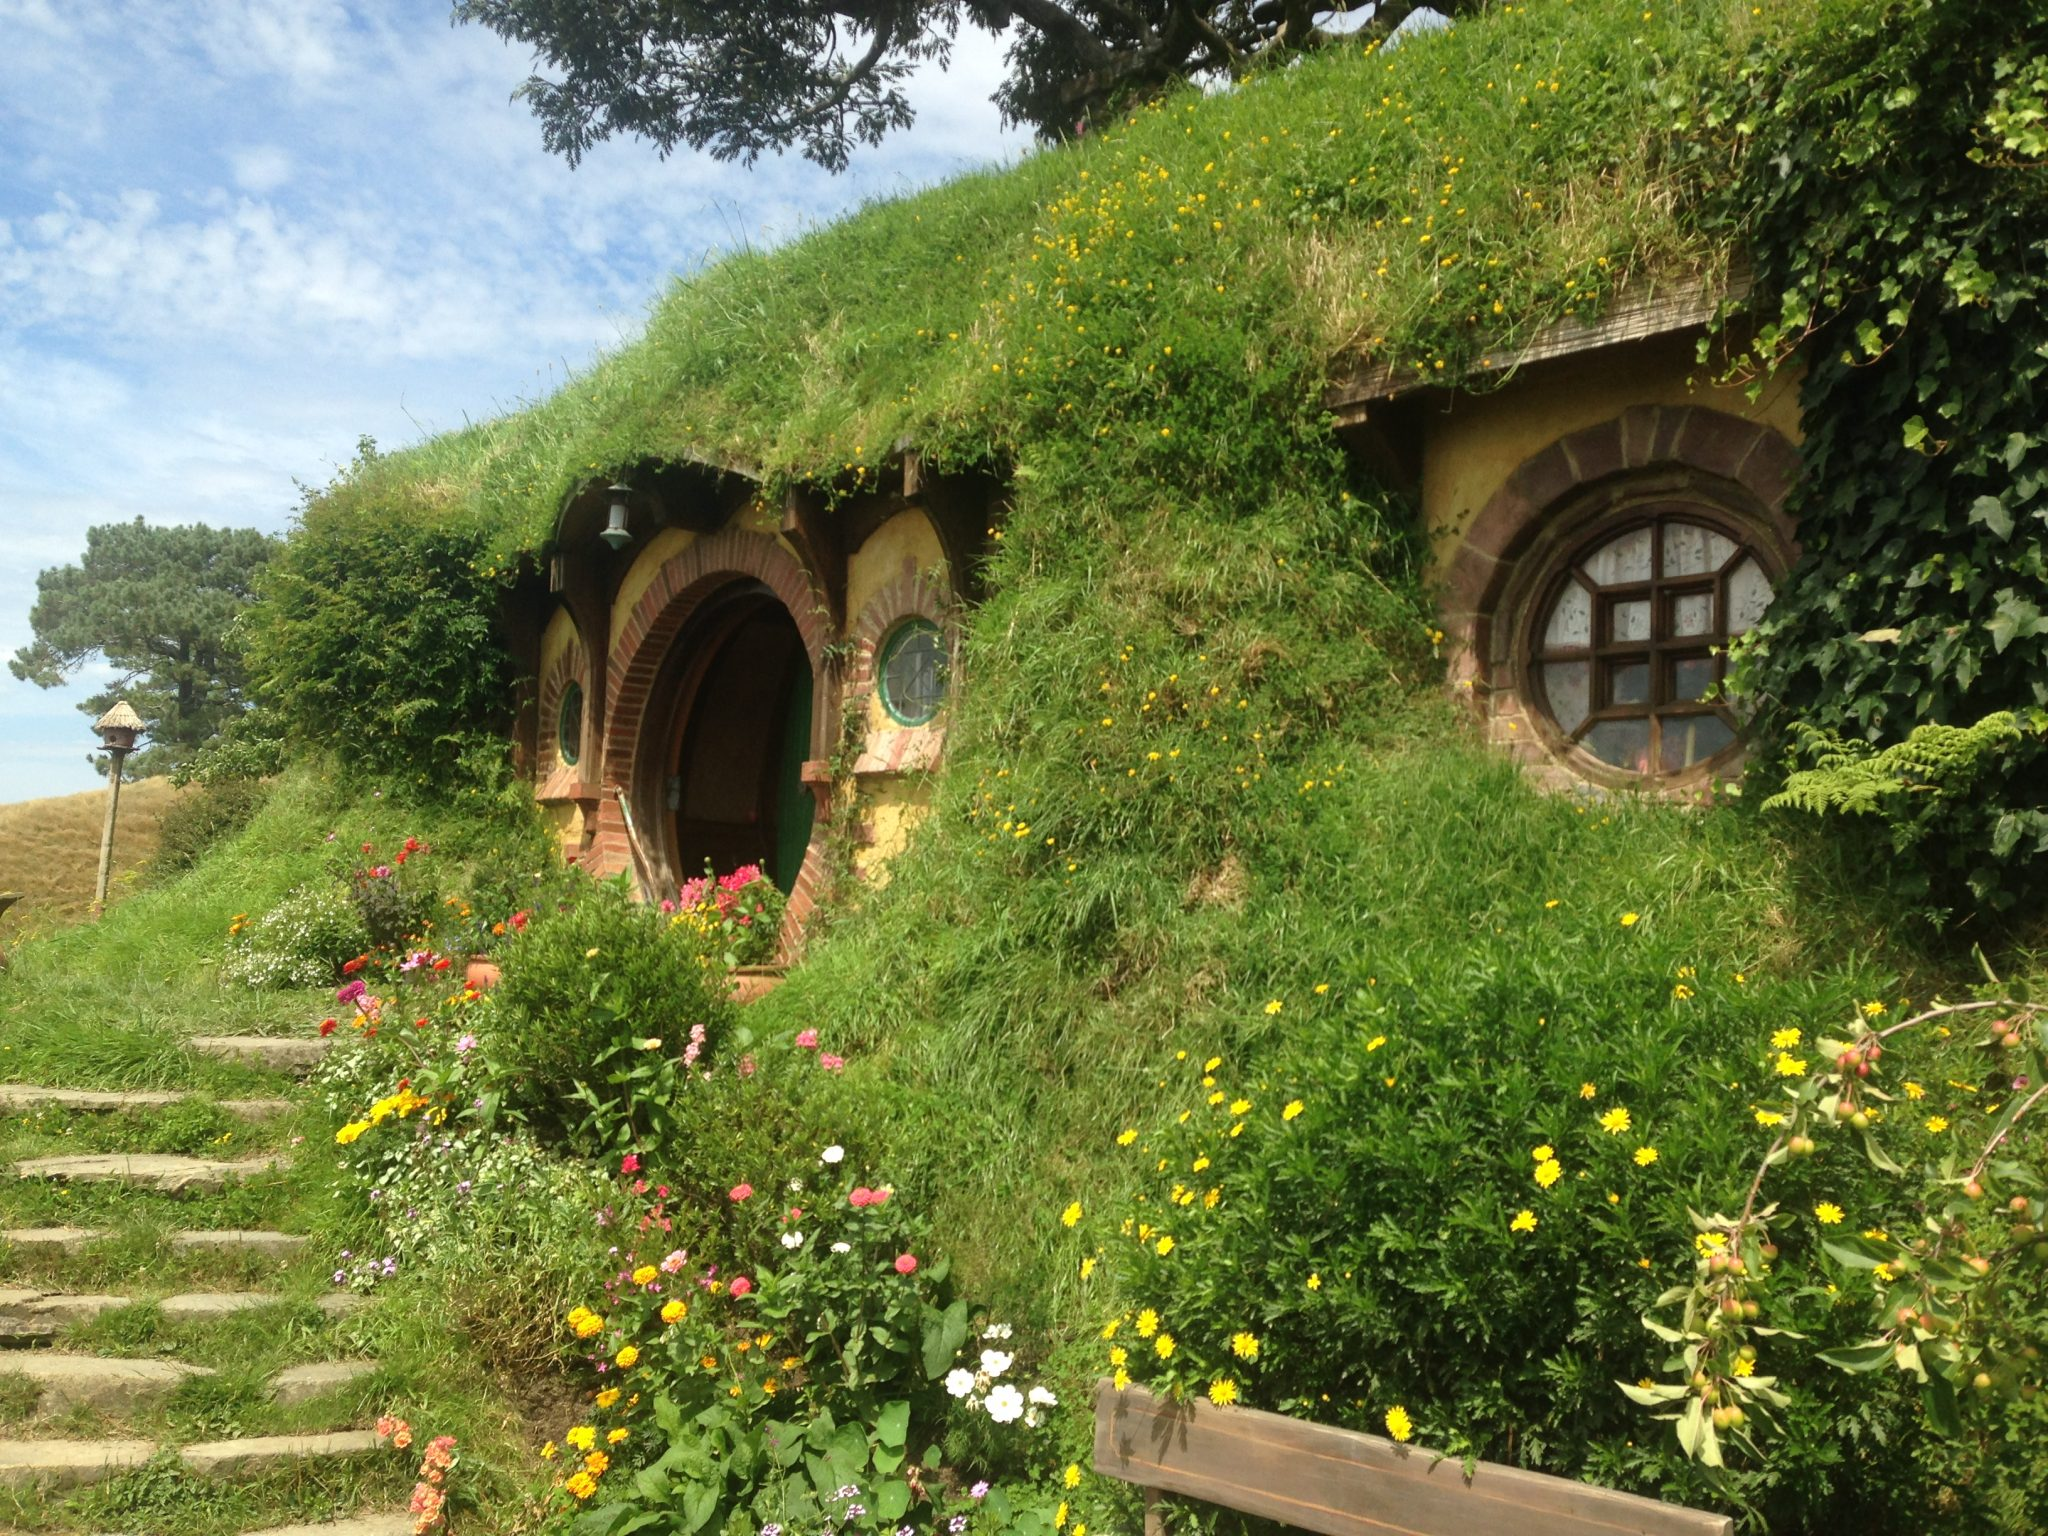 Bilbo Baggins hobbit hole in the Shire, Hobbiton Movie Set, New Zealand.